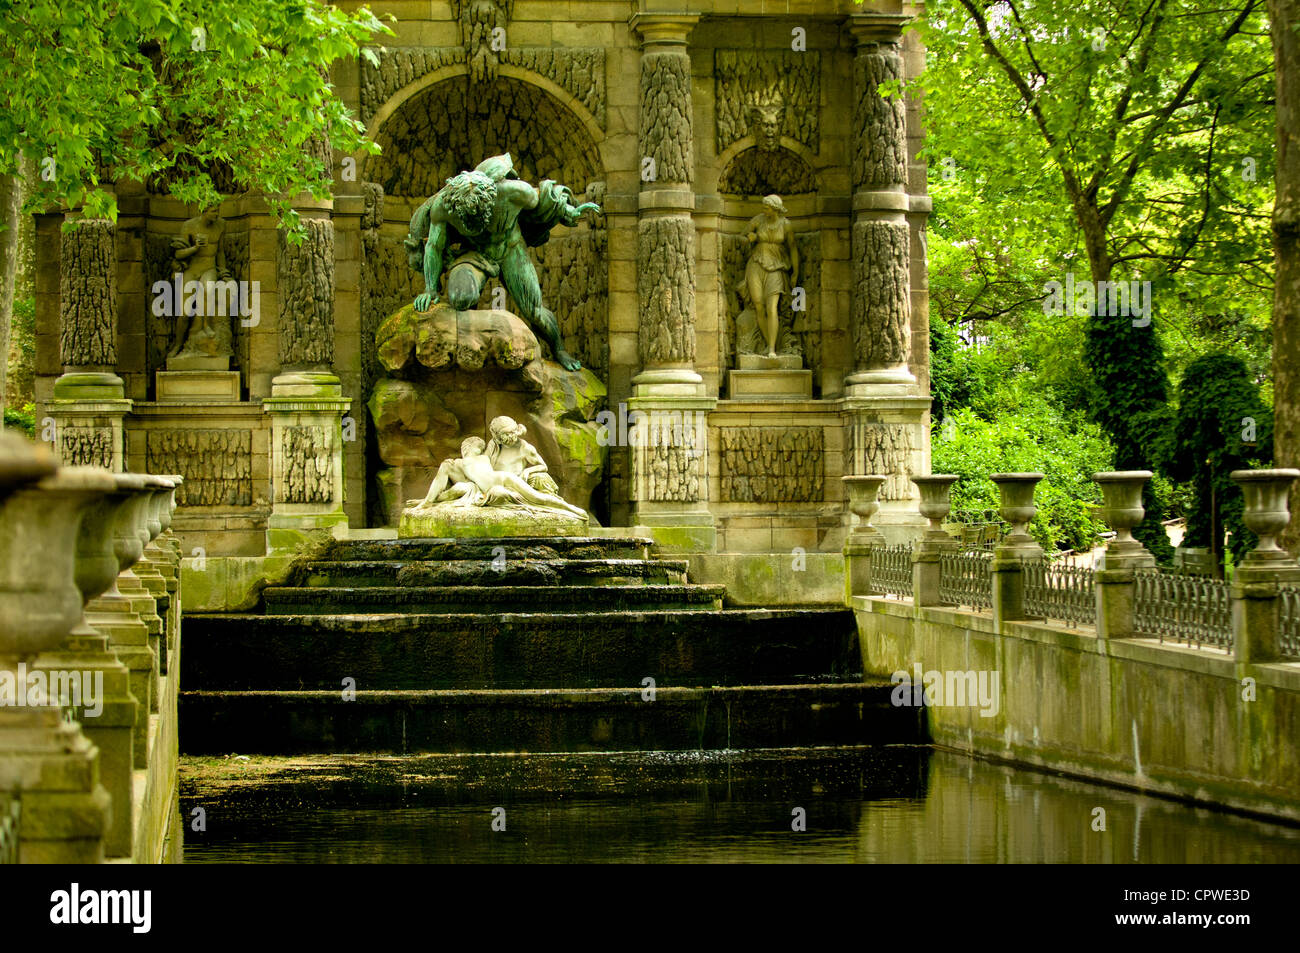 Medici fountain or fontaine de medicis jardin du luxembourg paris stock photo royalty free - Fontaine jardin du luxembourg ...